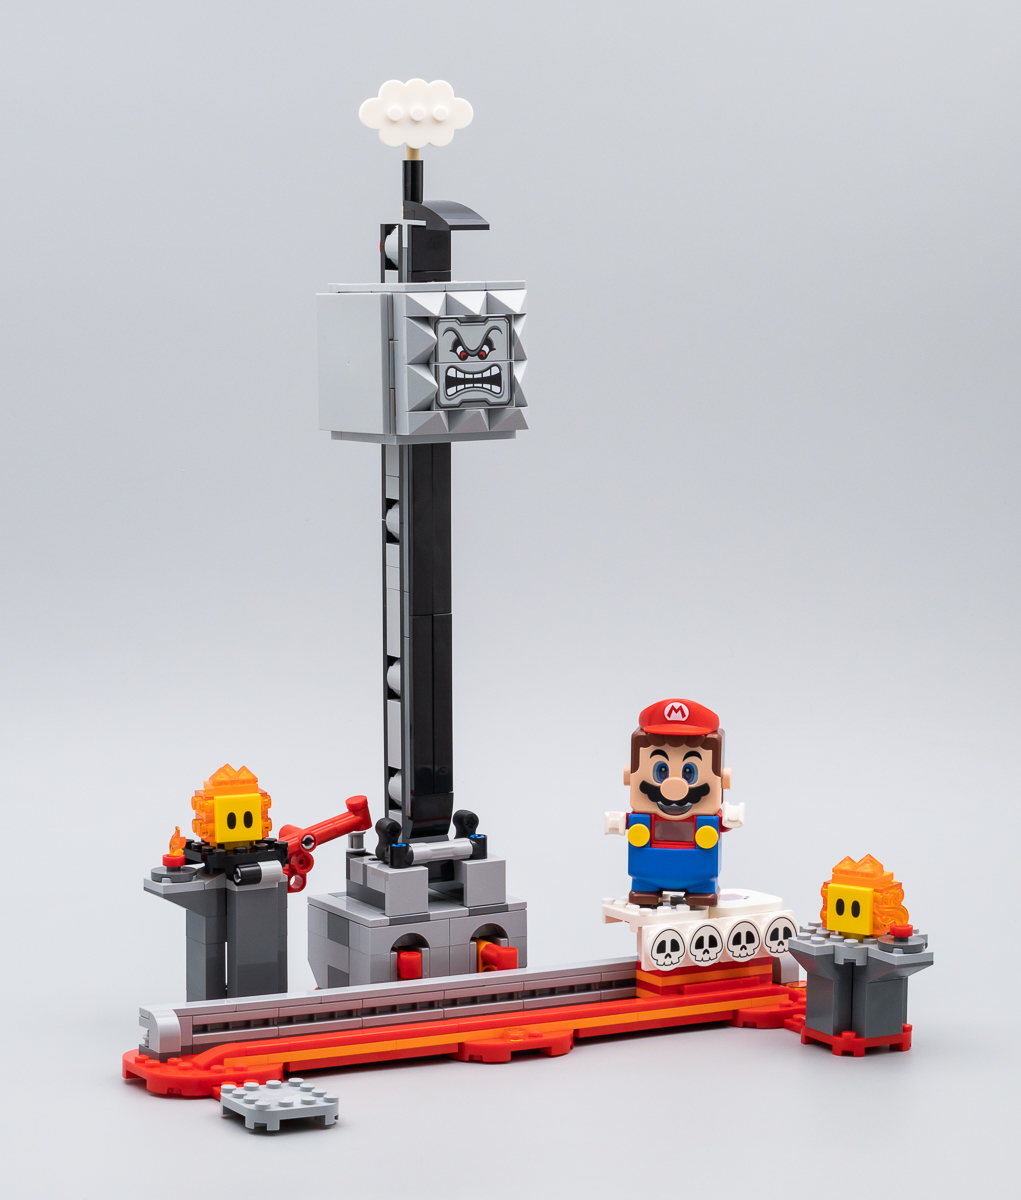 Nintendo s'associe avec LEGO ! - Page 4 71376-lego-super-mario-thwomp-drop-expansion-set-review-hothbricks_1